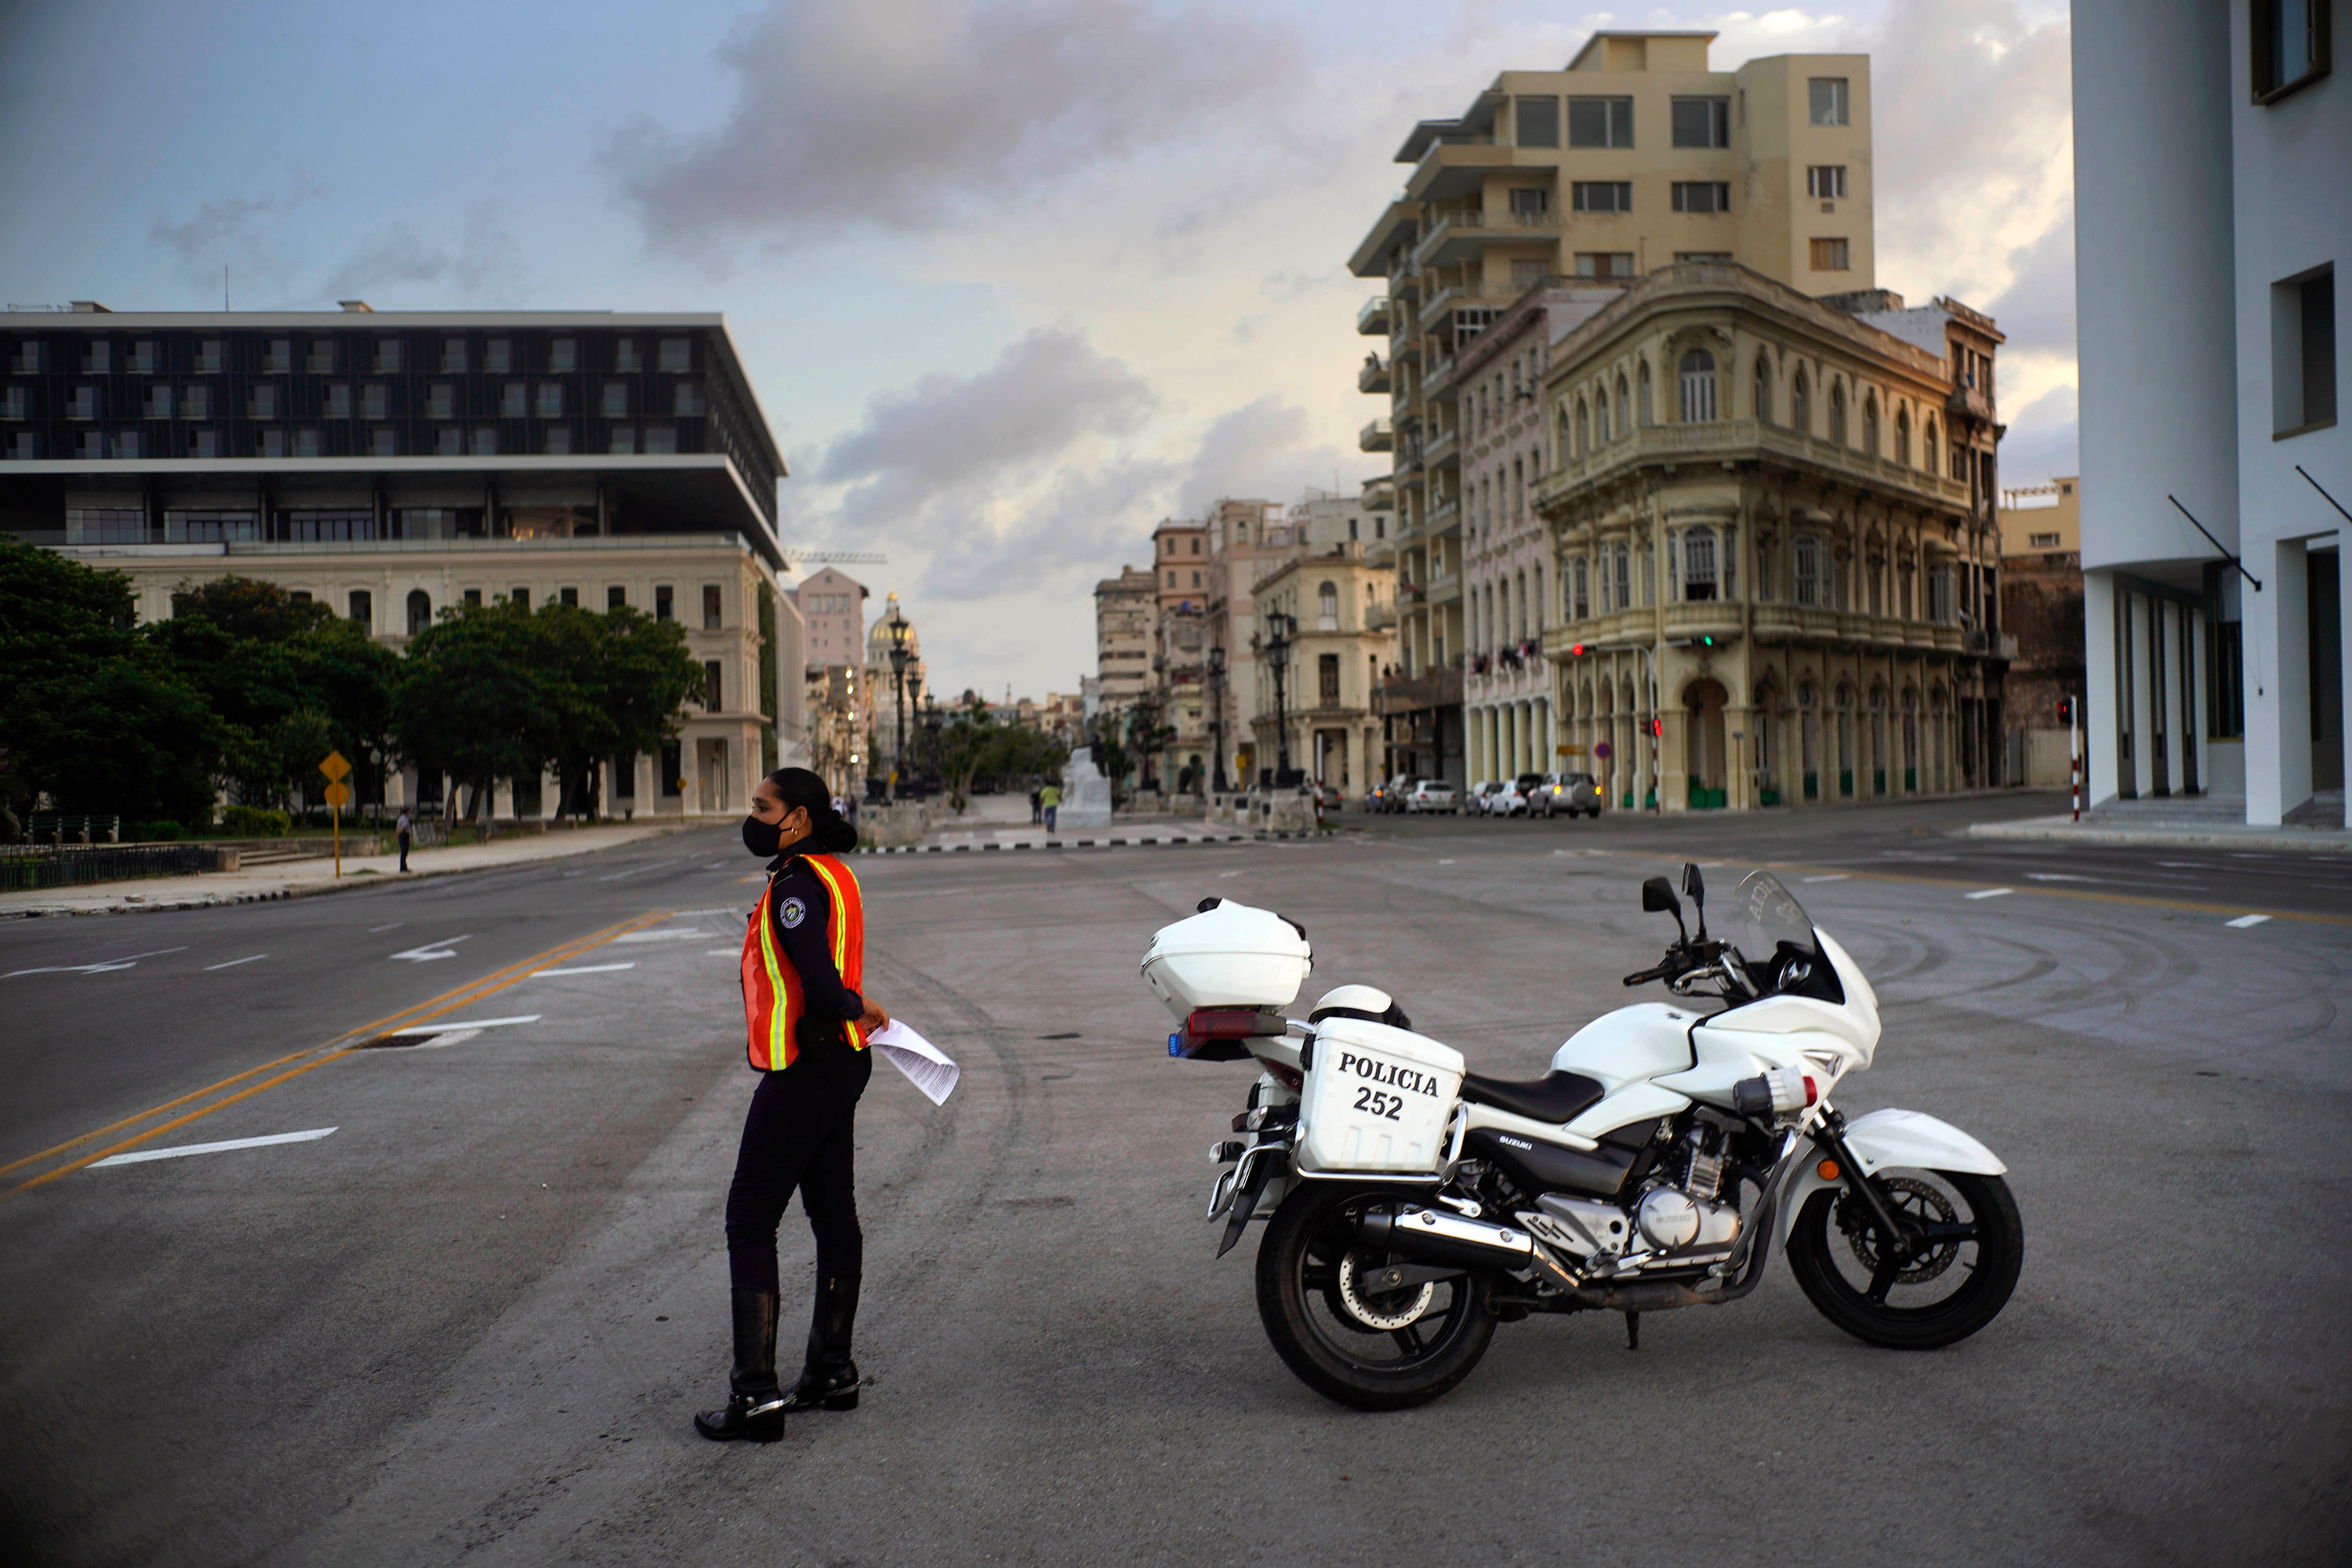 A police officer keeps watch on a street in Havana, Cuba after the government-imposed curfew on September 1.